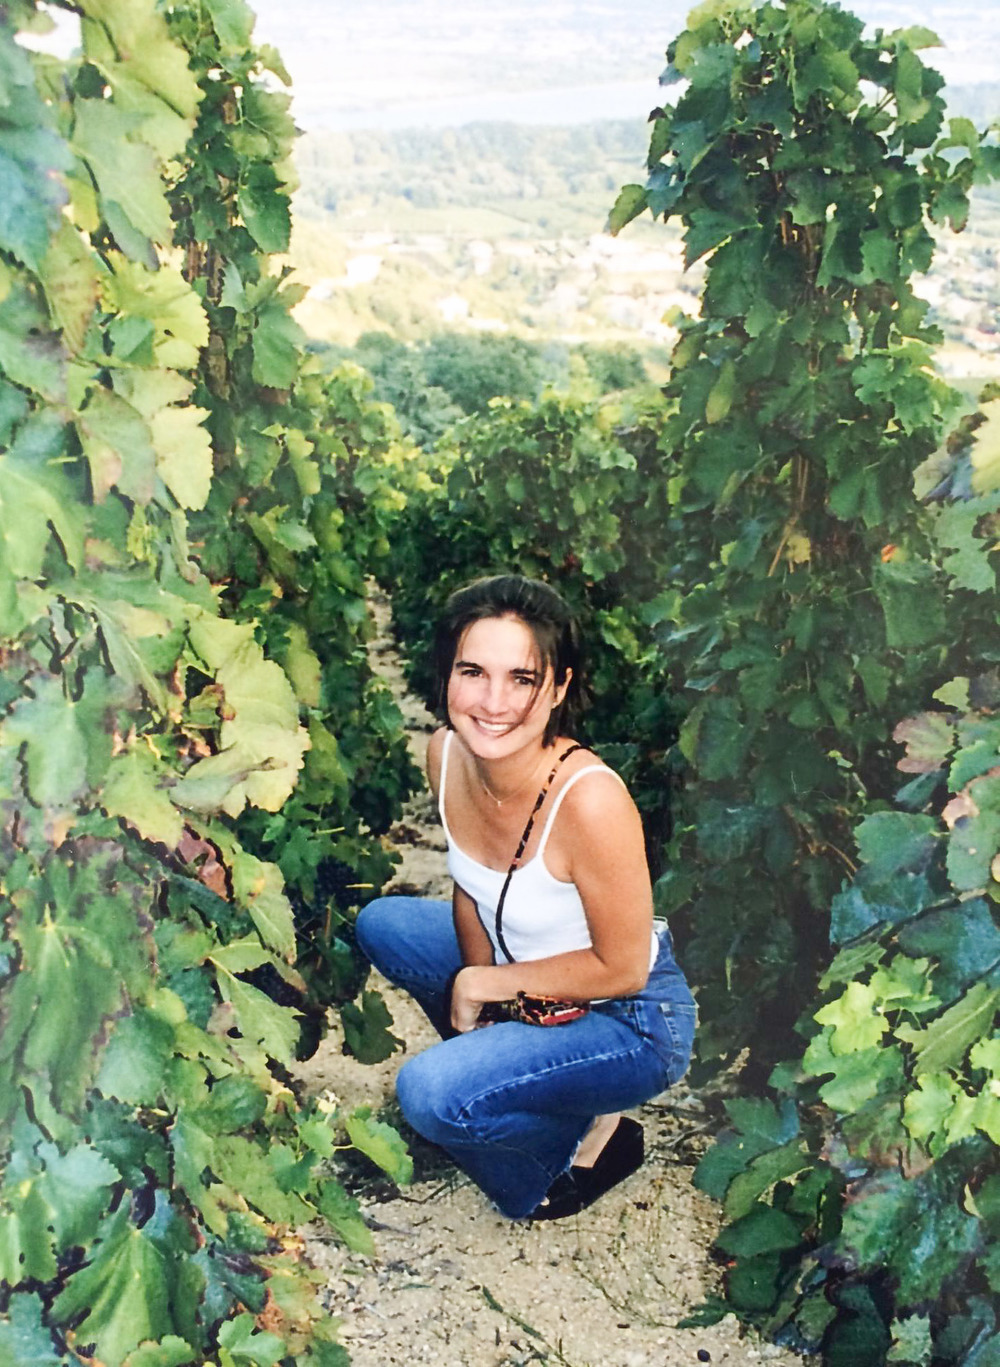 Inez at a vineyard in Condriey, France